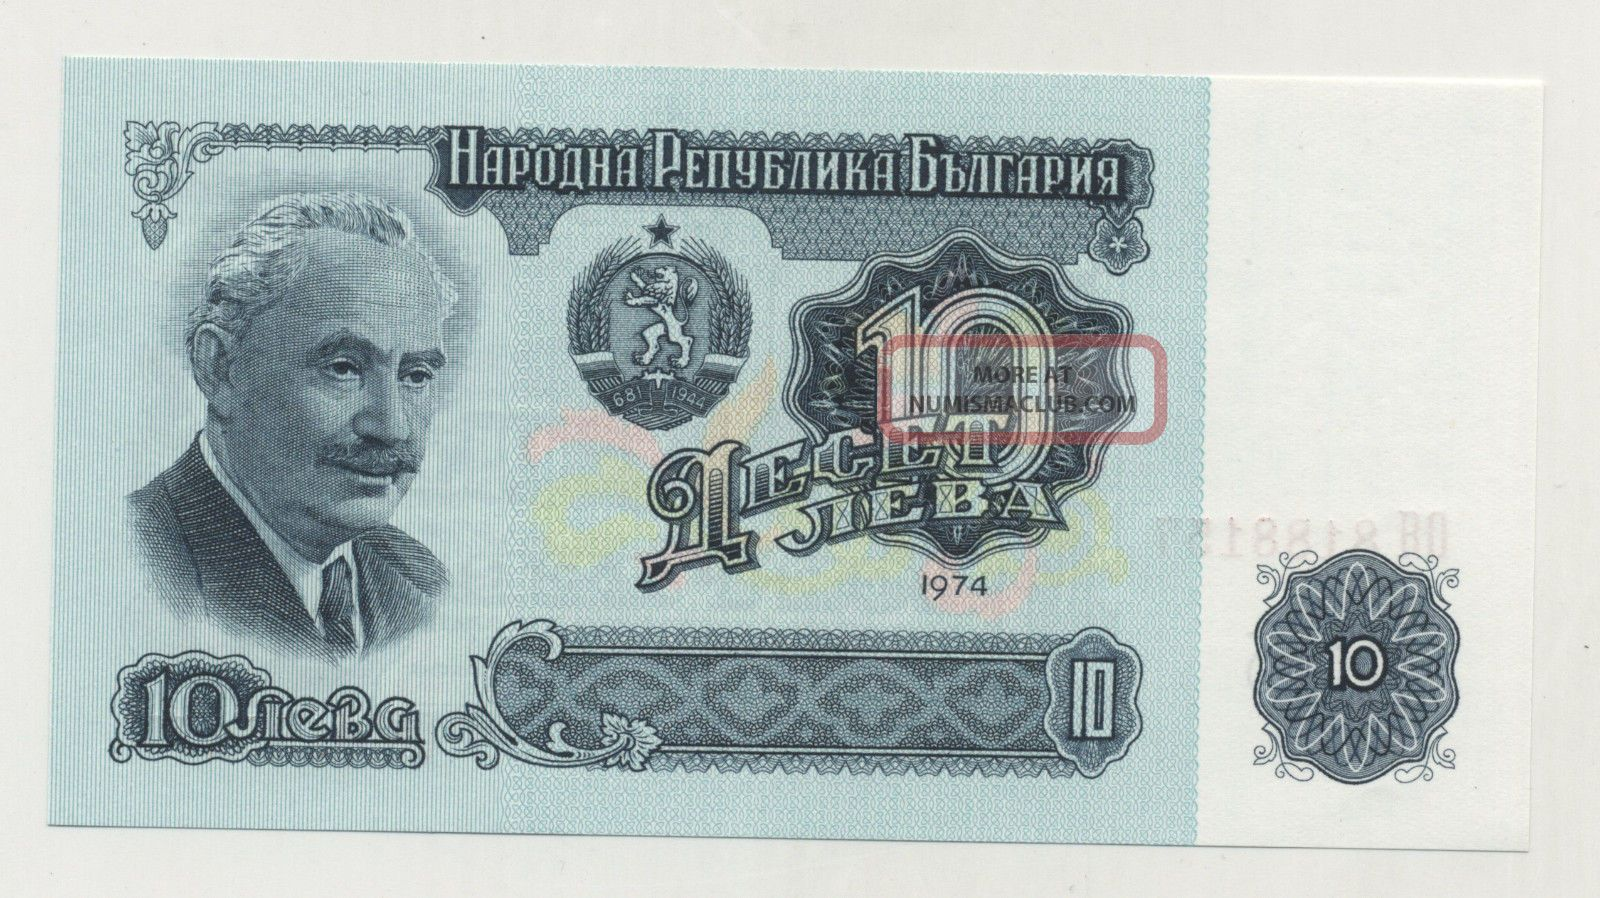 Bulgaria 10 Leva 1974 Pick 93.  A Unc Uncirculated Banknote Europe photo